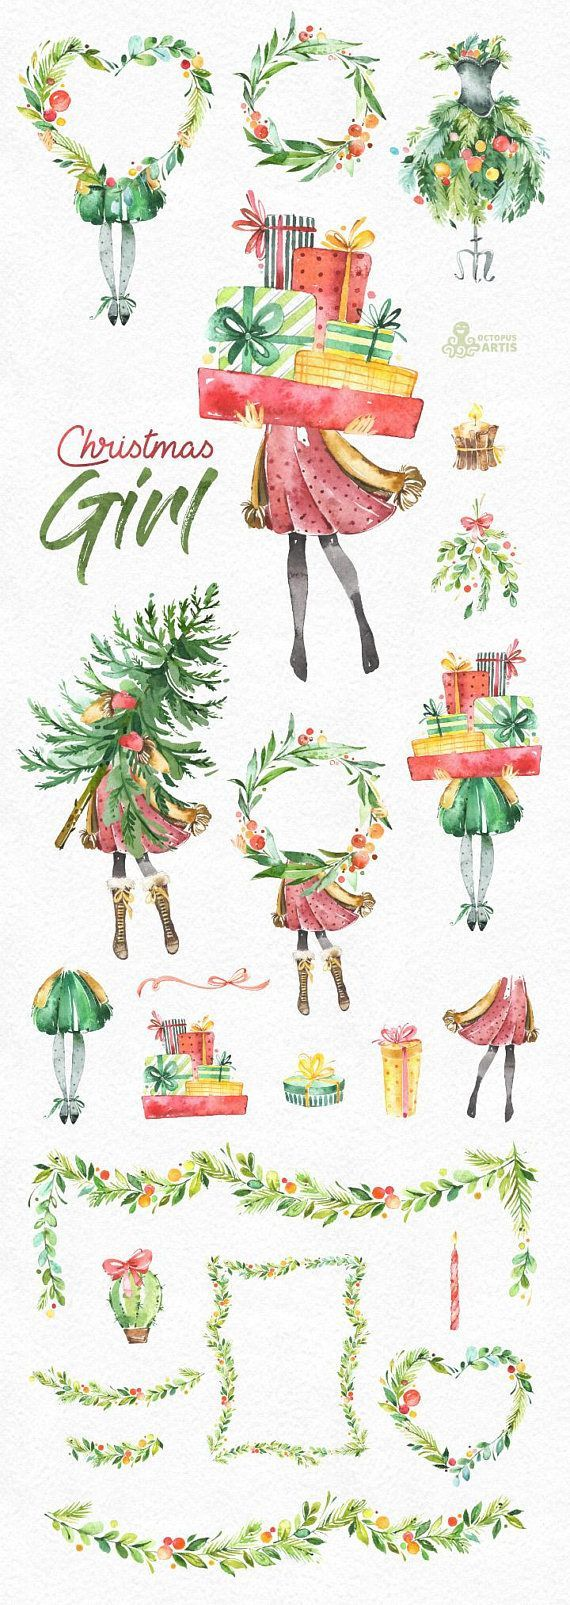 Basteln Weihnachten Clipart Merry Christmas Quotes Christmas Girl Watercolor Holiday